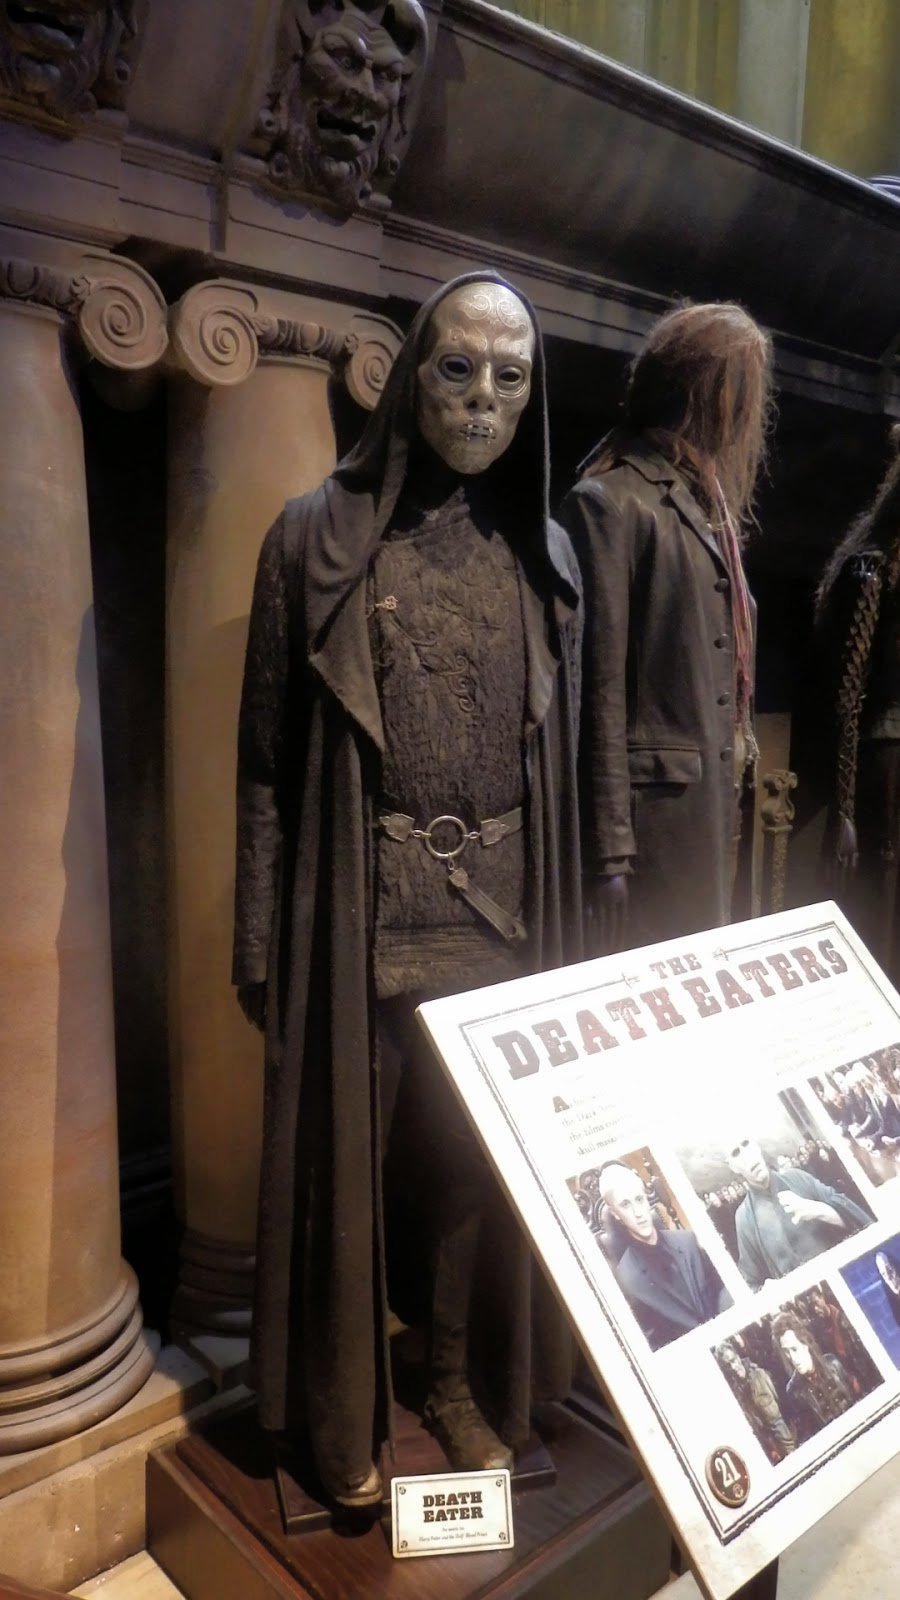 Harry Potter Warner Brothers Studio Tour London The Death Eaters